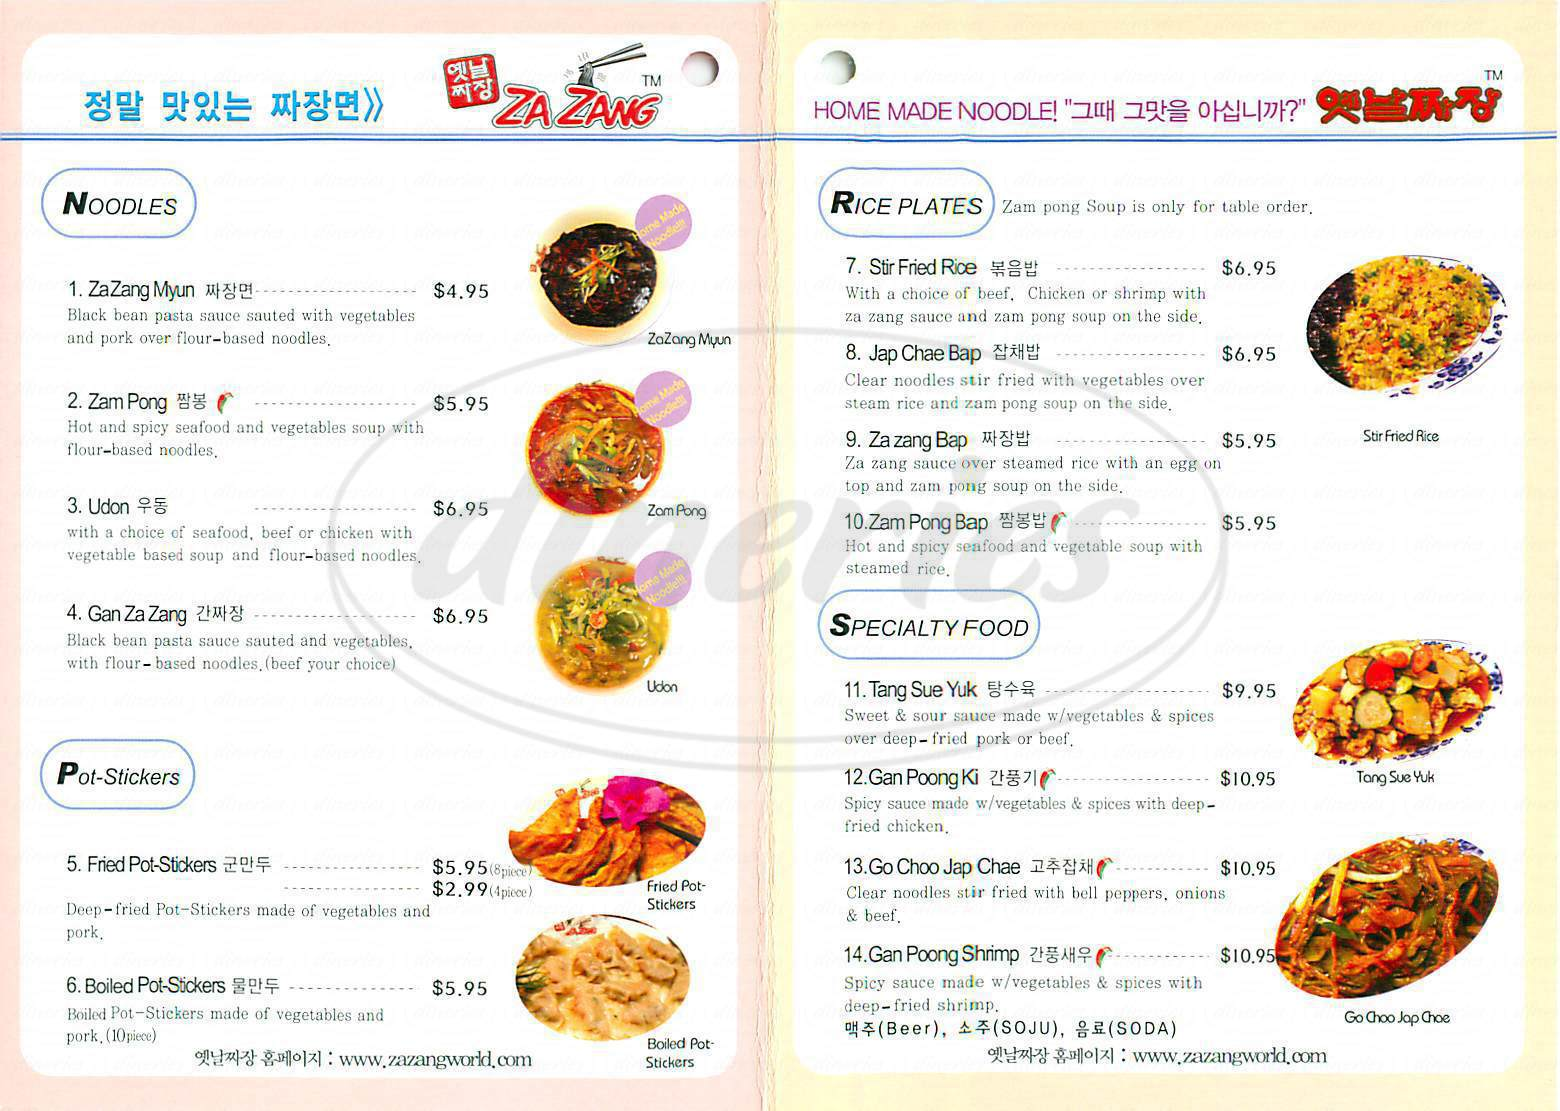 menu for Zazang Restaurant